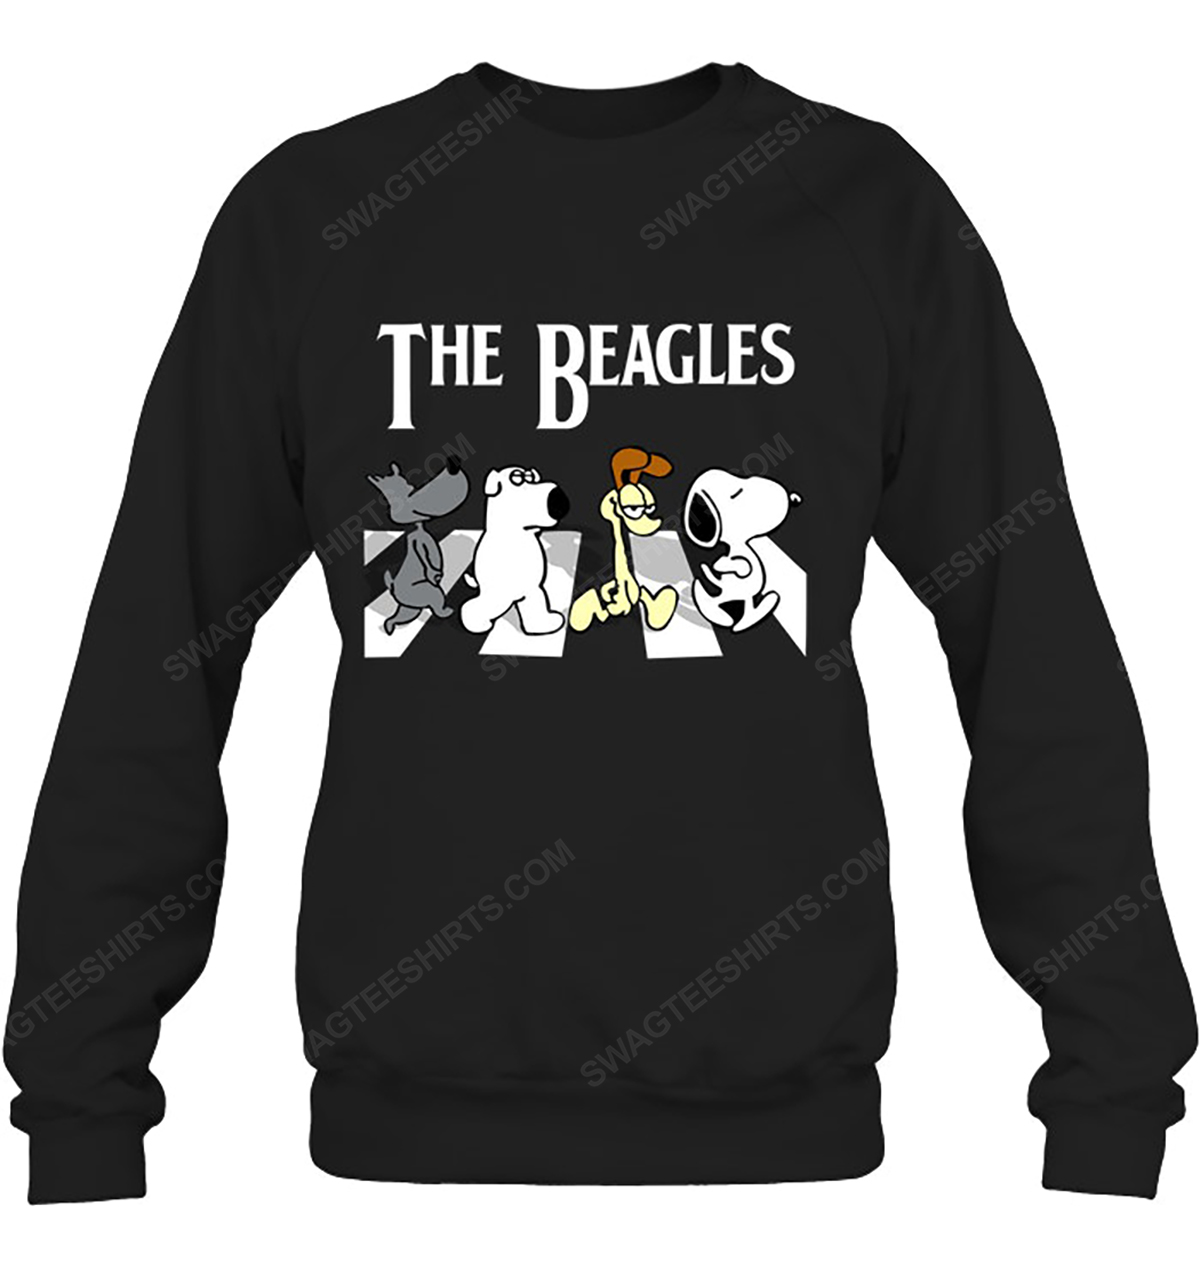 Snoopy and friends the beagles abbey road sweatshirt 1